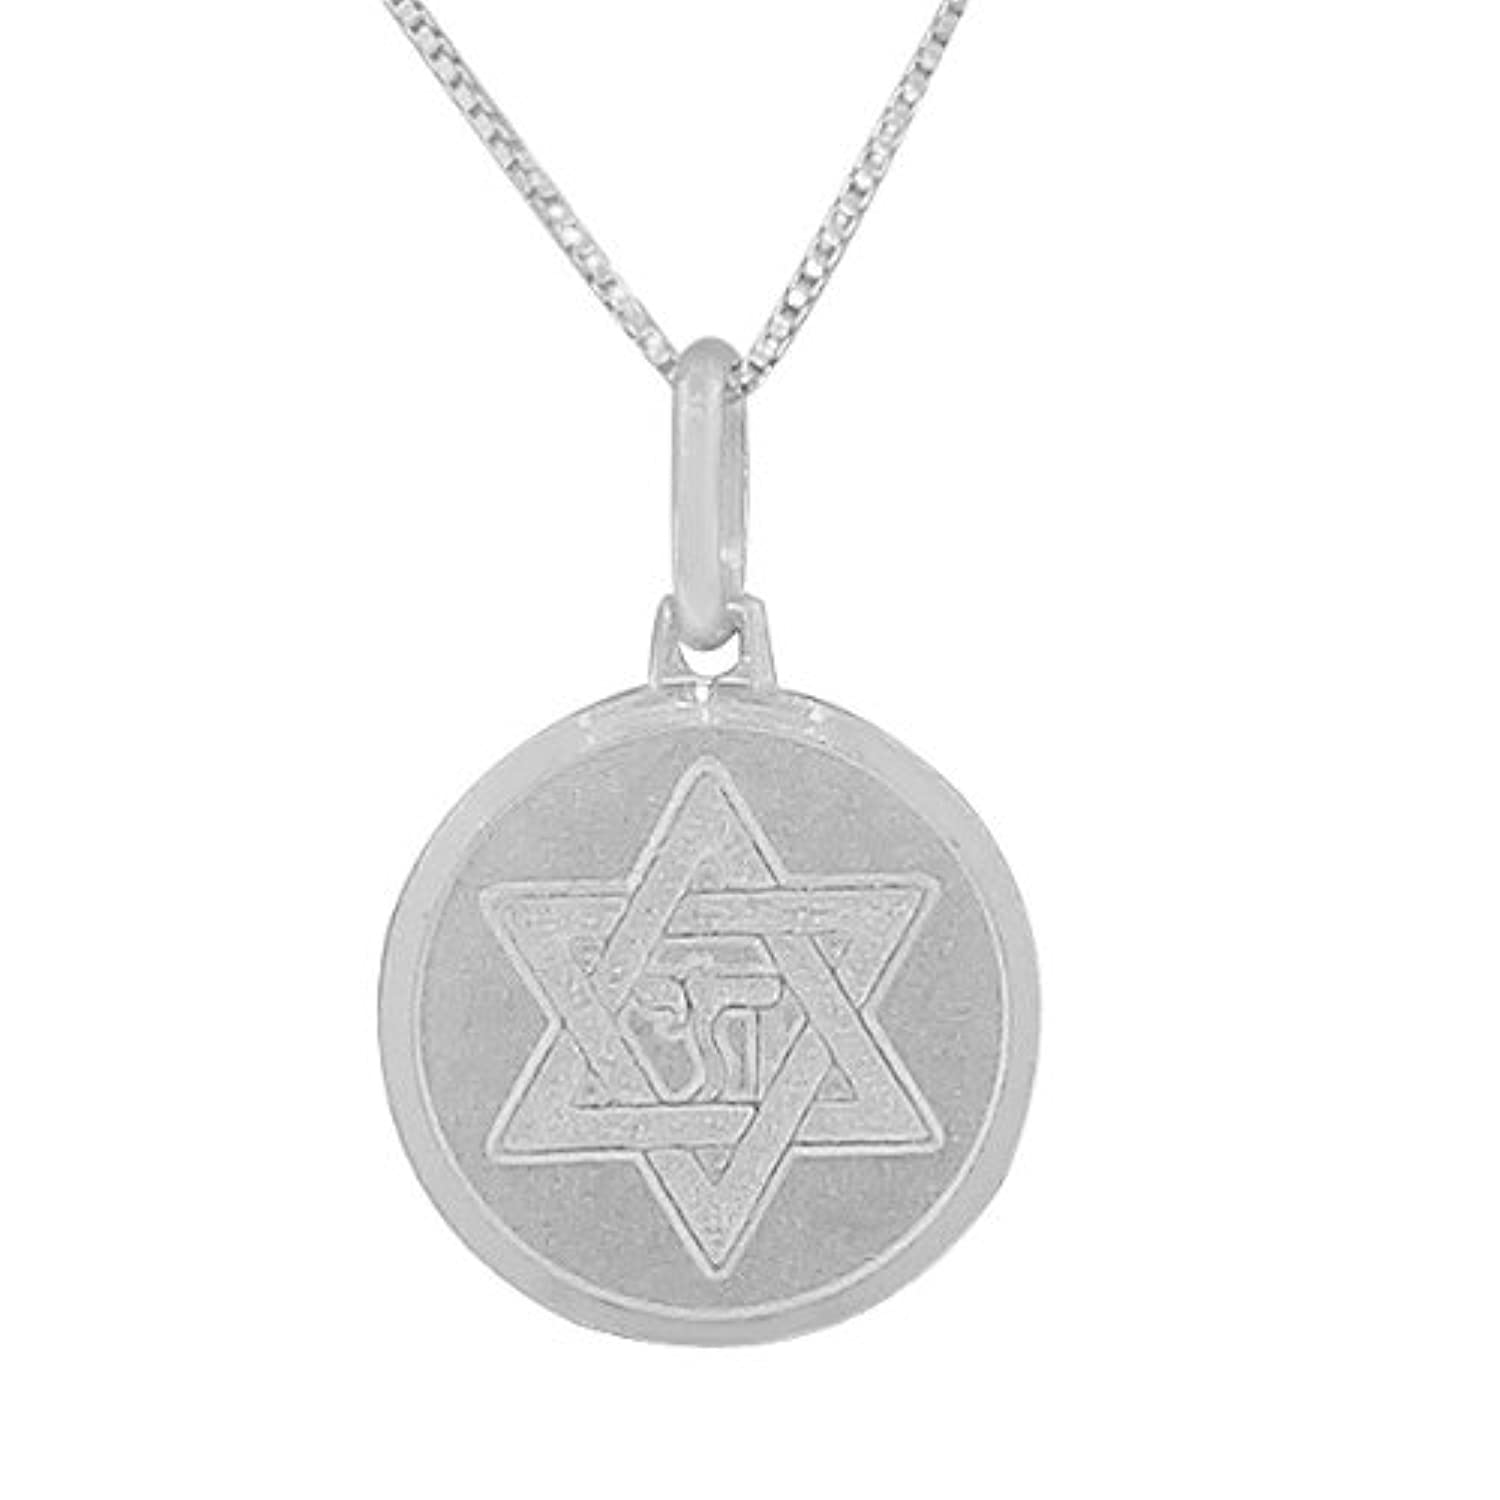 925 Sterling Silver Jewish Star of David Chai Unisex Pendant Necklace with Chain